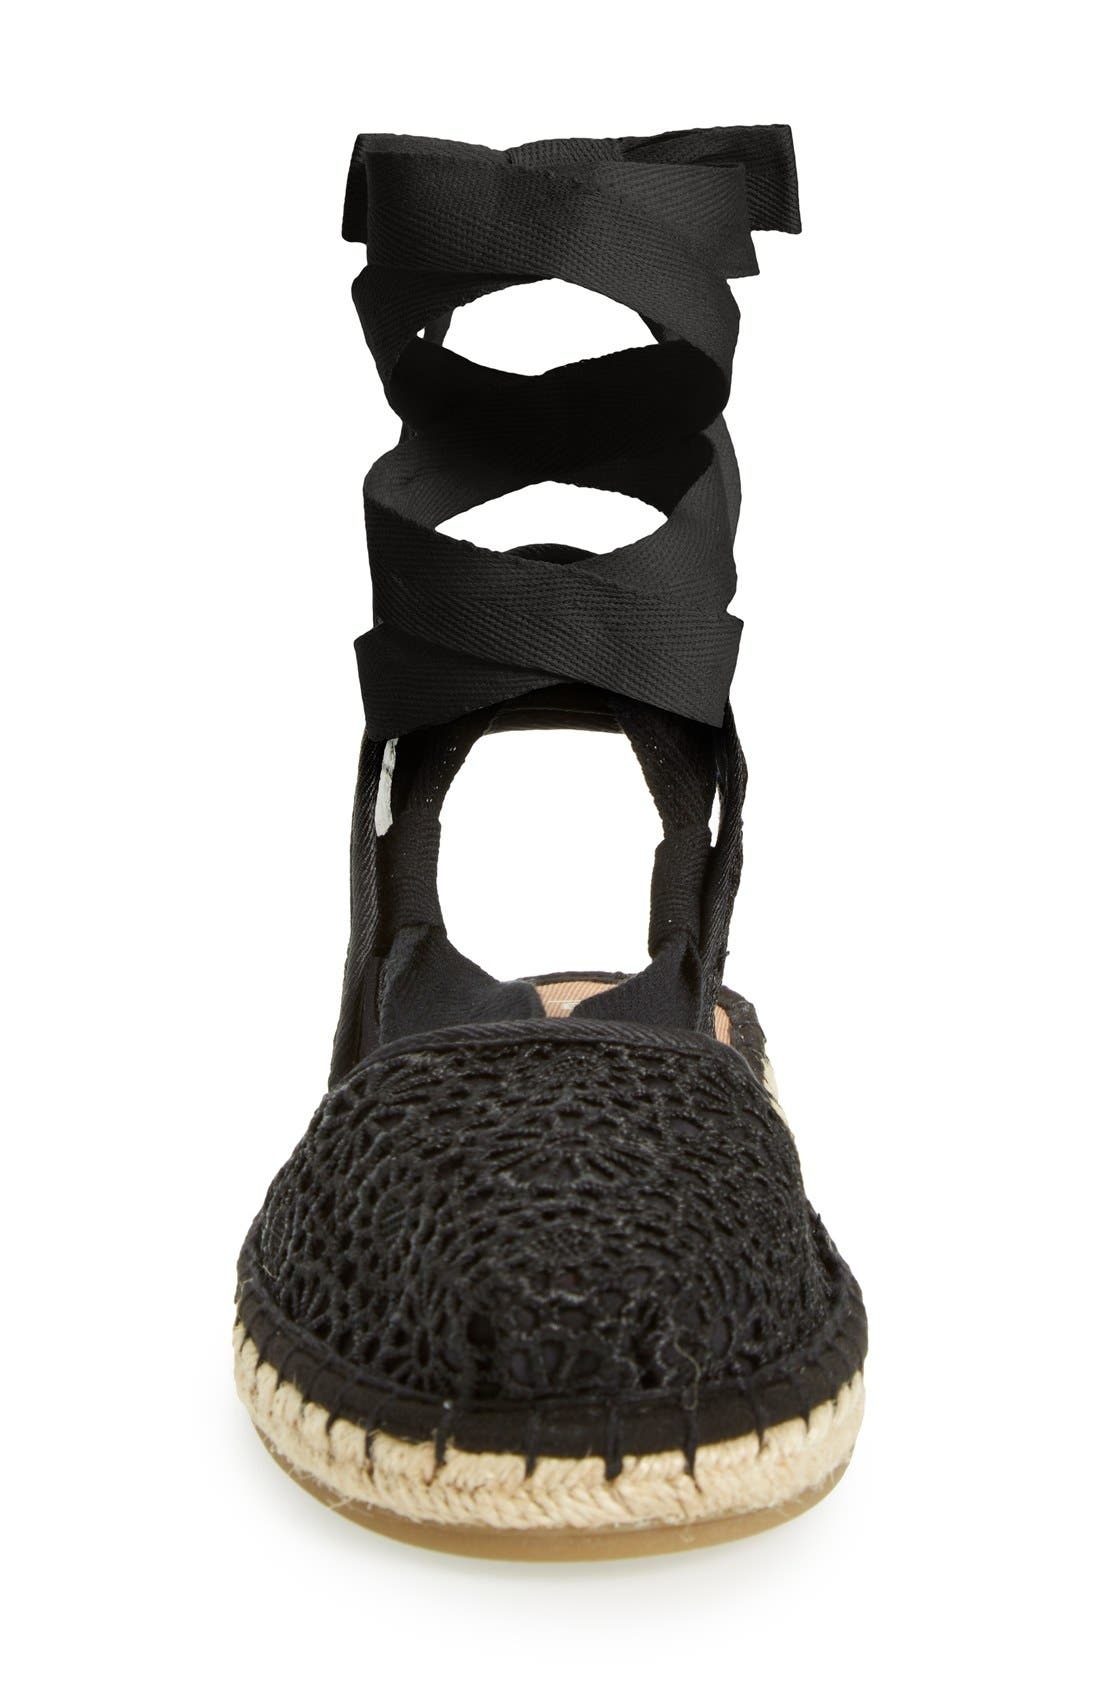 'Bella' Espadrille Sandal,                             Alternate thumbnail 3, color,                             Black Crochet